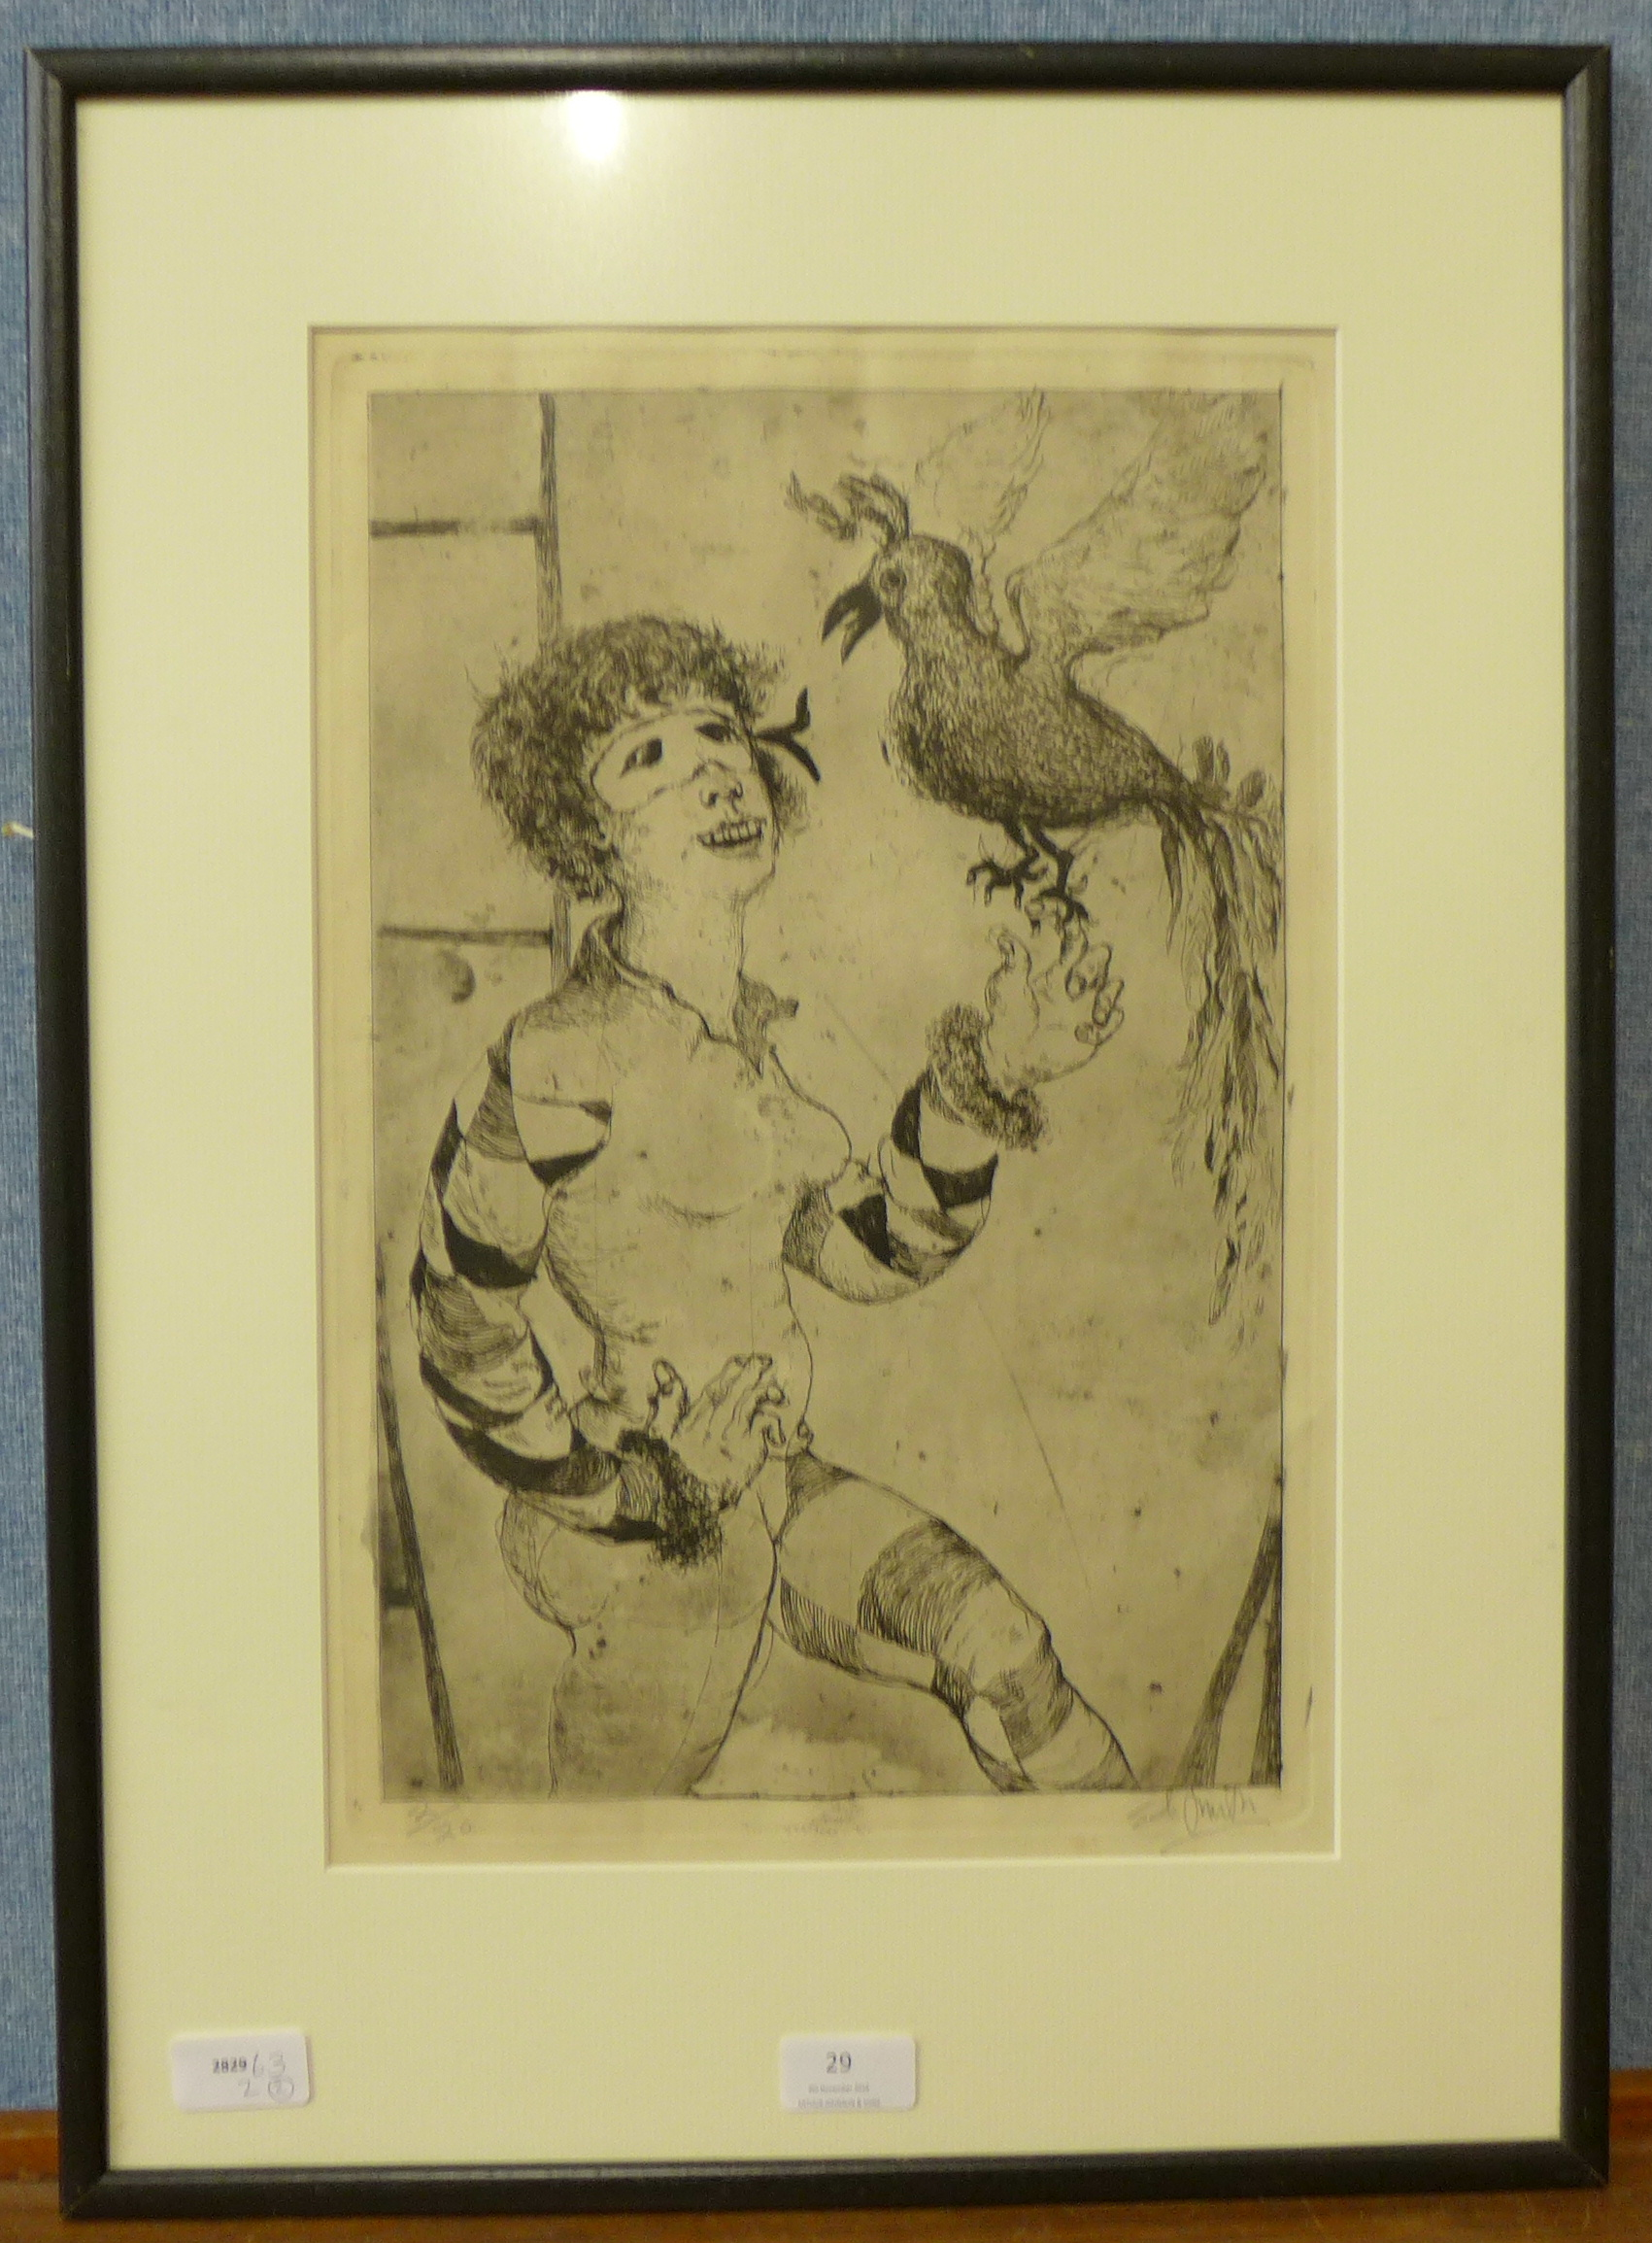 Lot 29 - Ed Smith, Harlequin with parrot, limited edition etching,